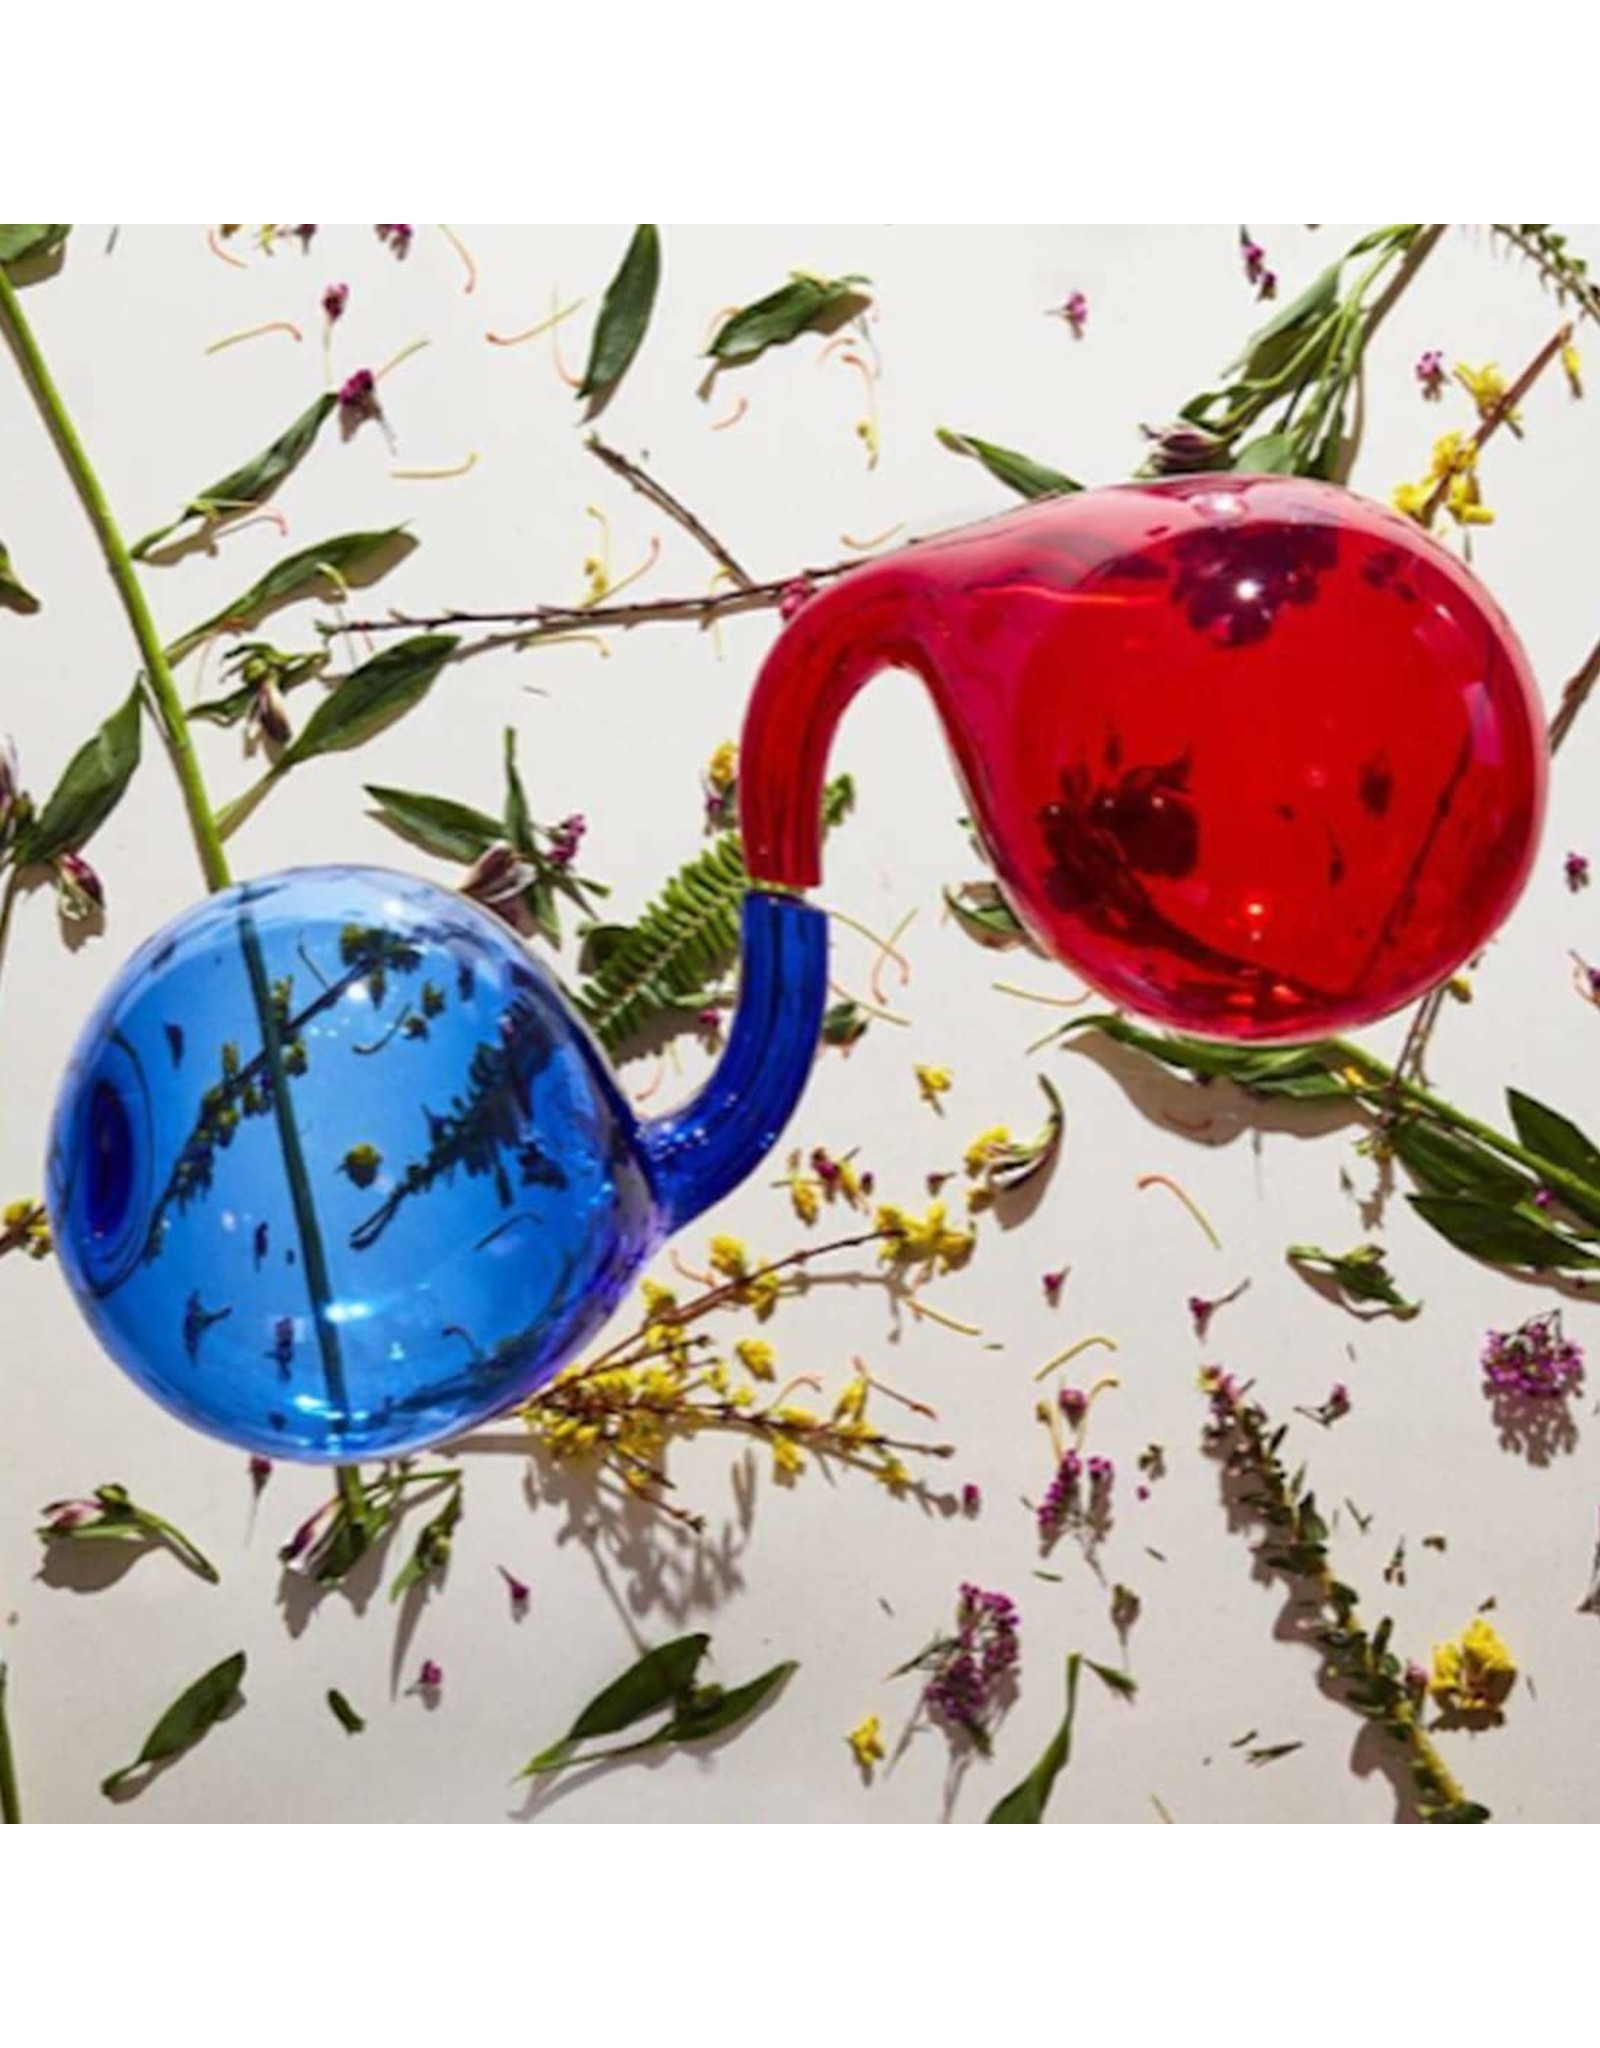 Dirty Projectors - Lamb Lit Prose (Color Vinyl)